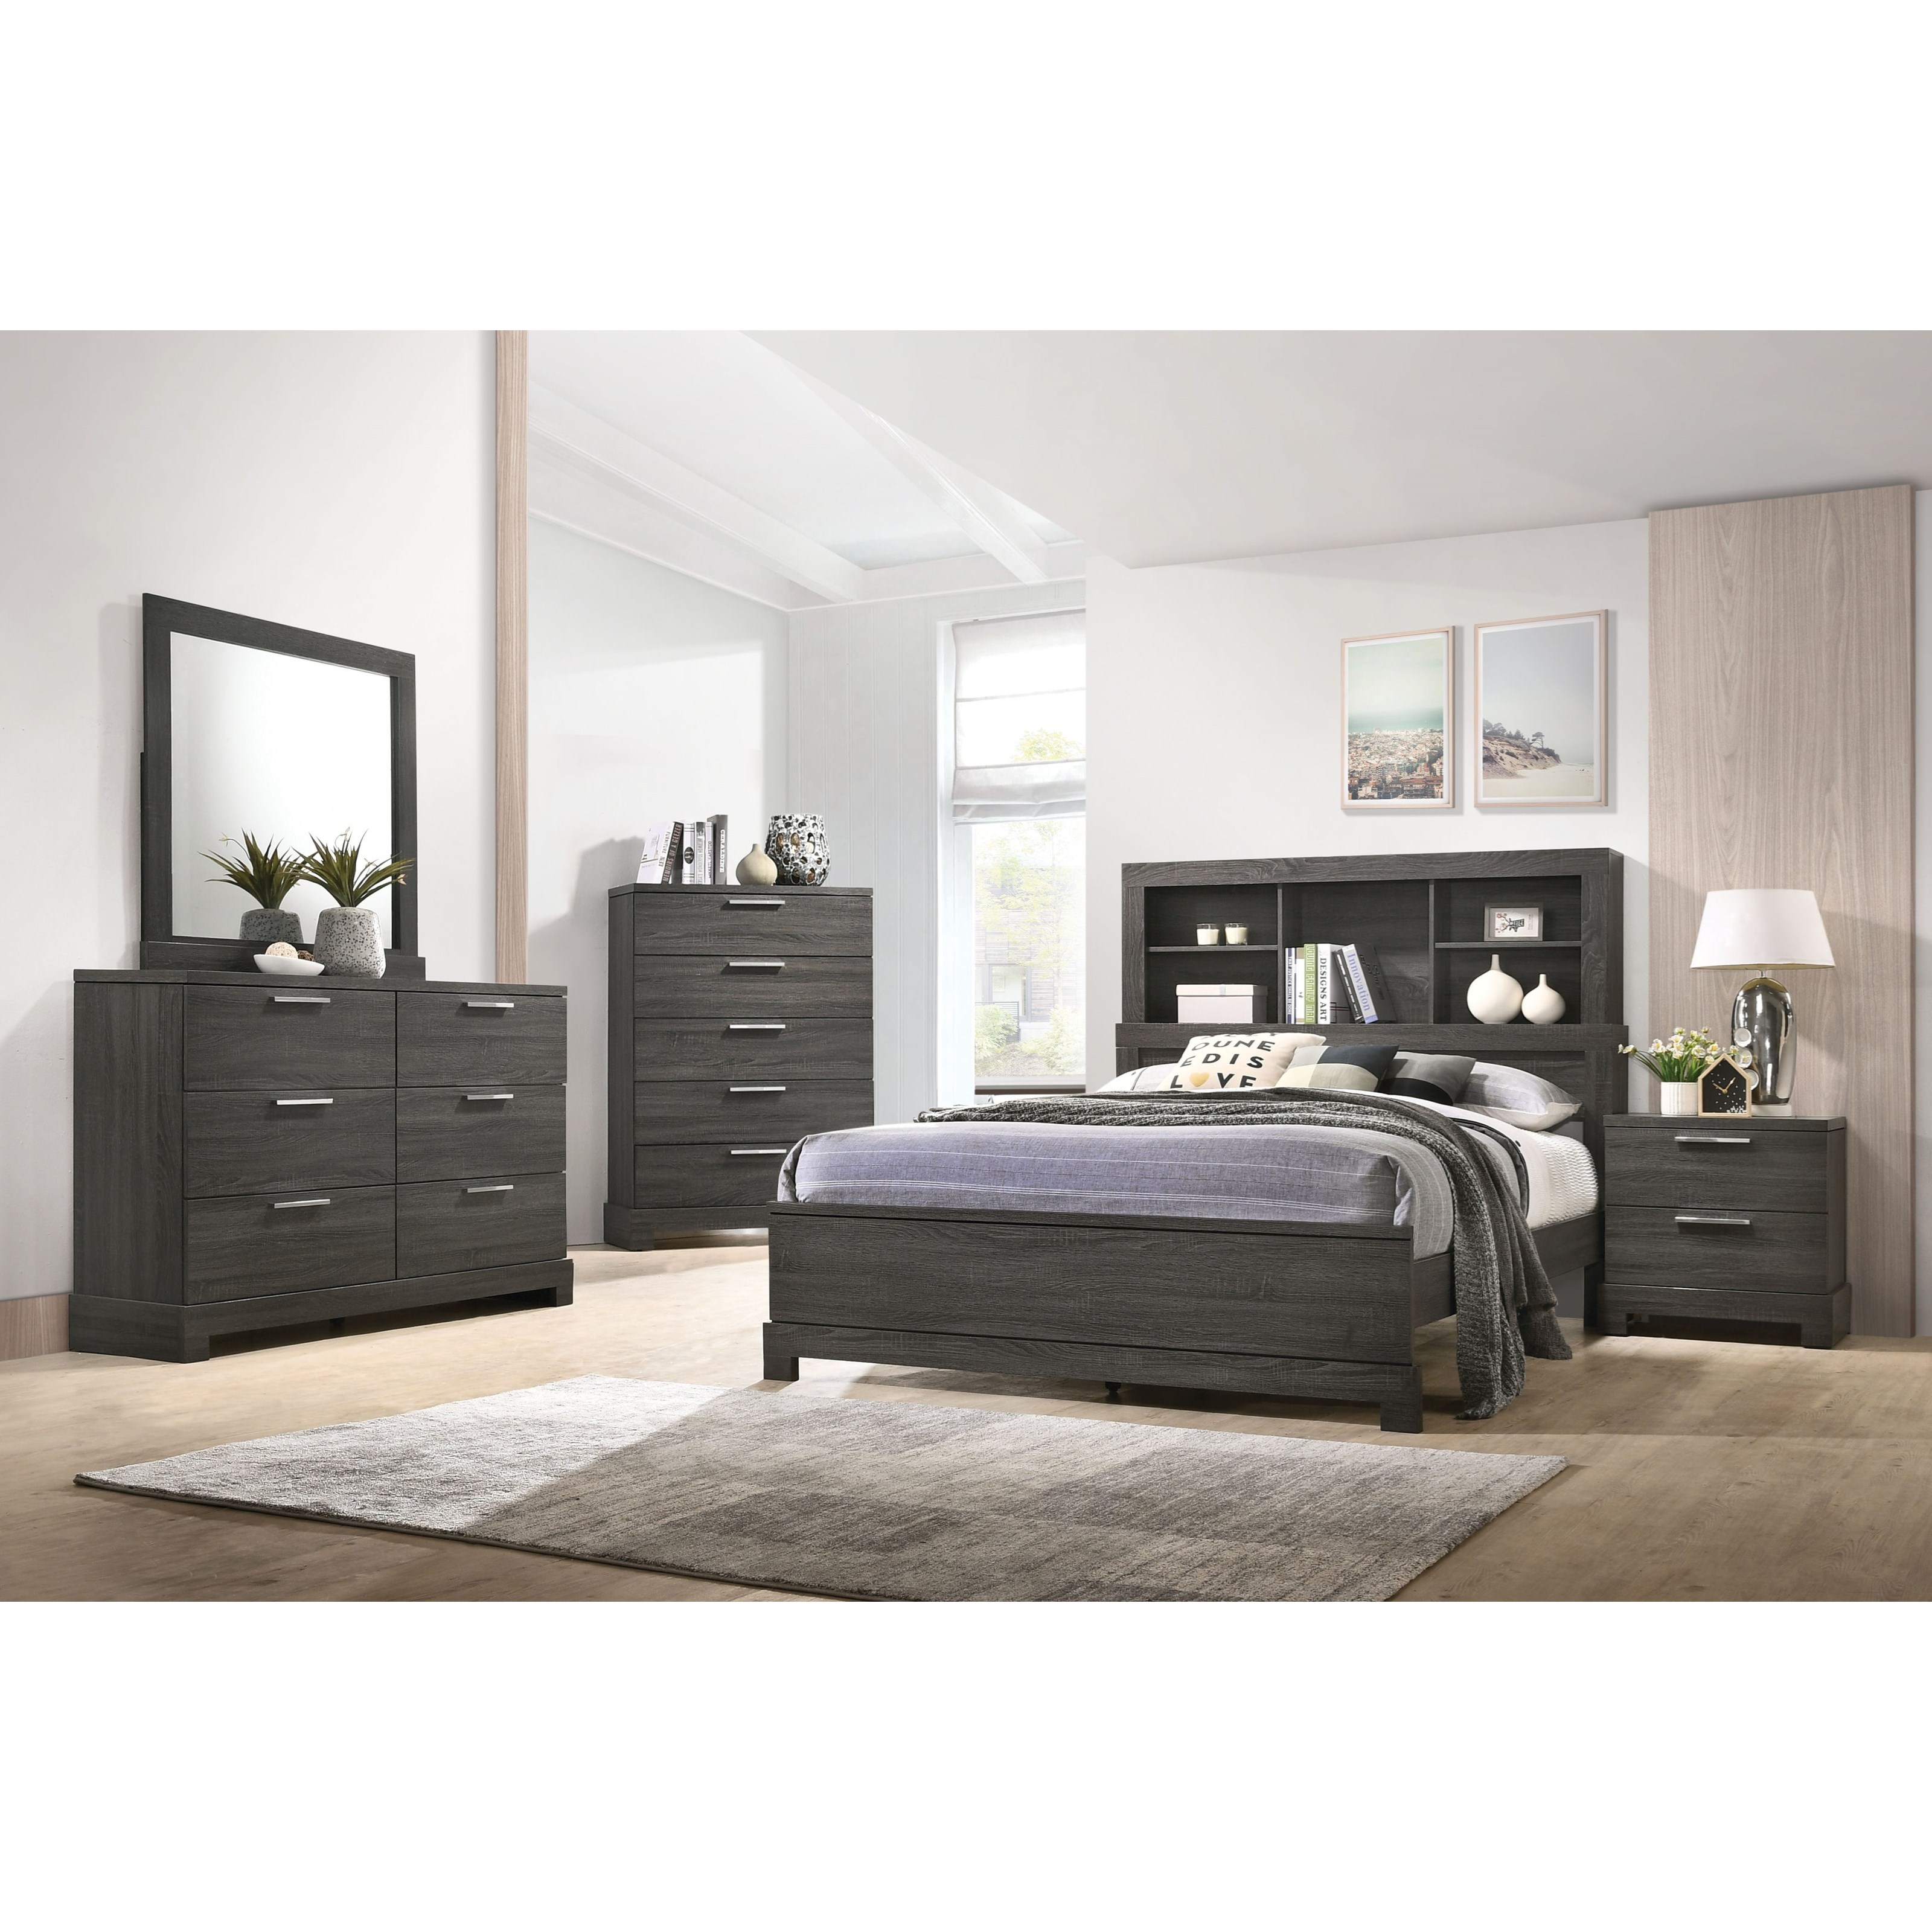 Lantha Queen Bedroom Group by Acme Furniture at Carolina Direct